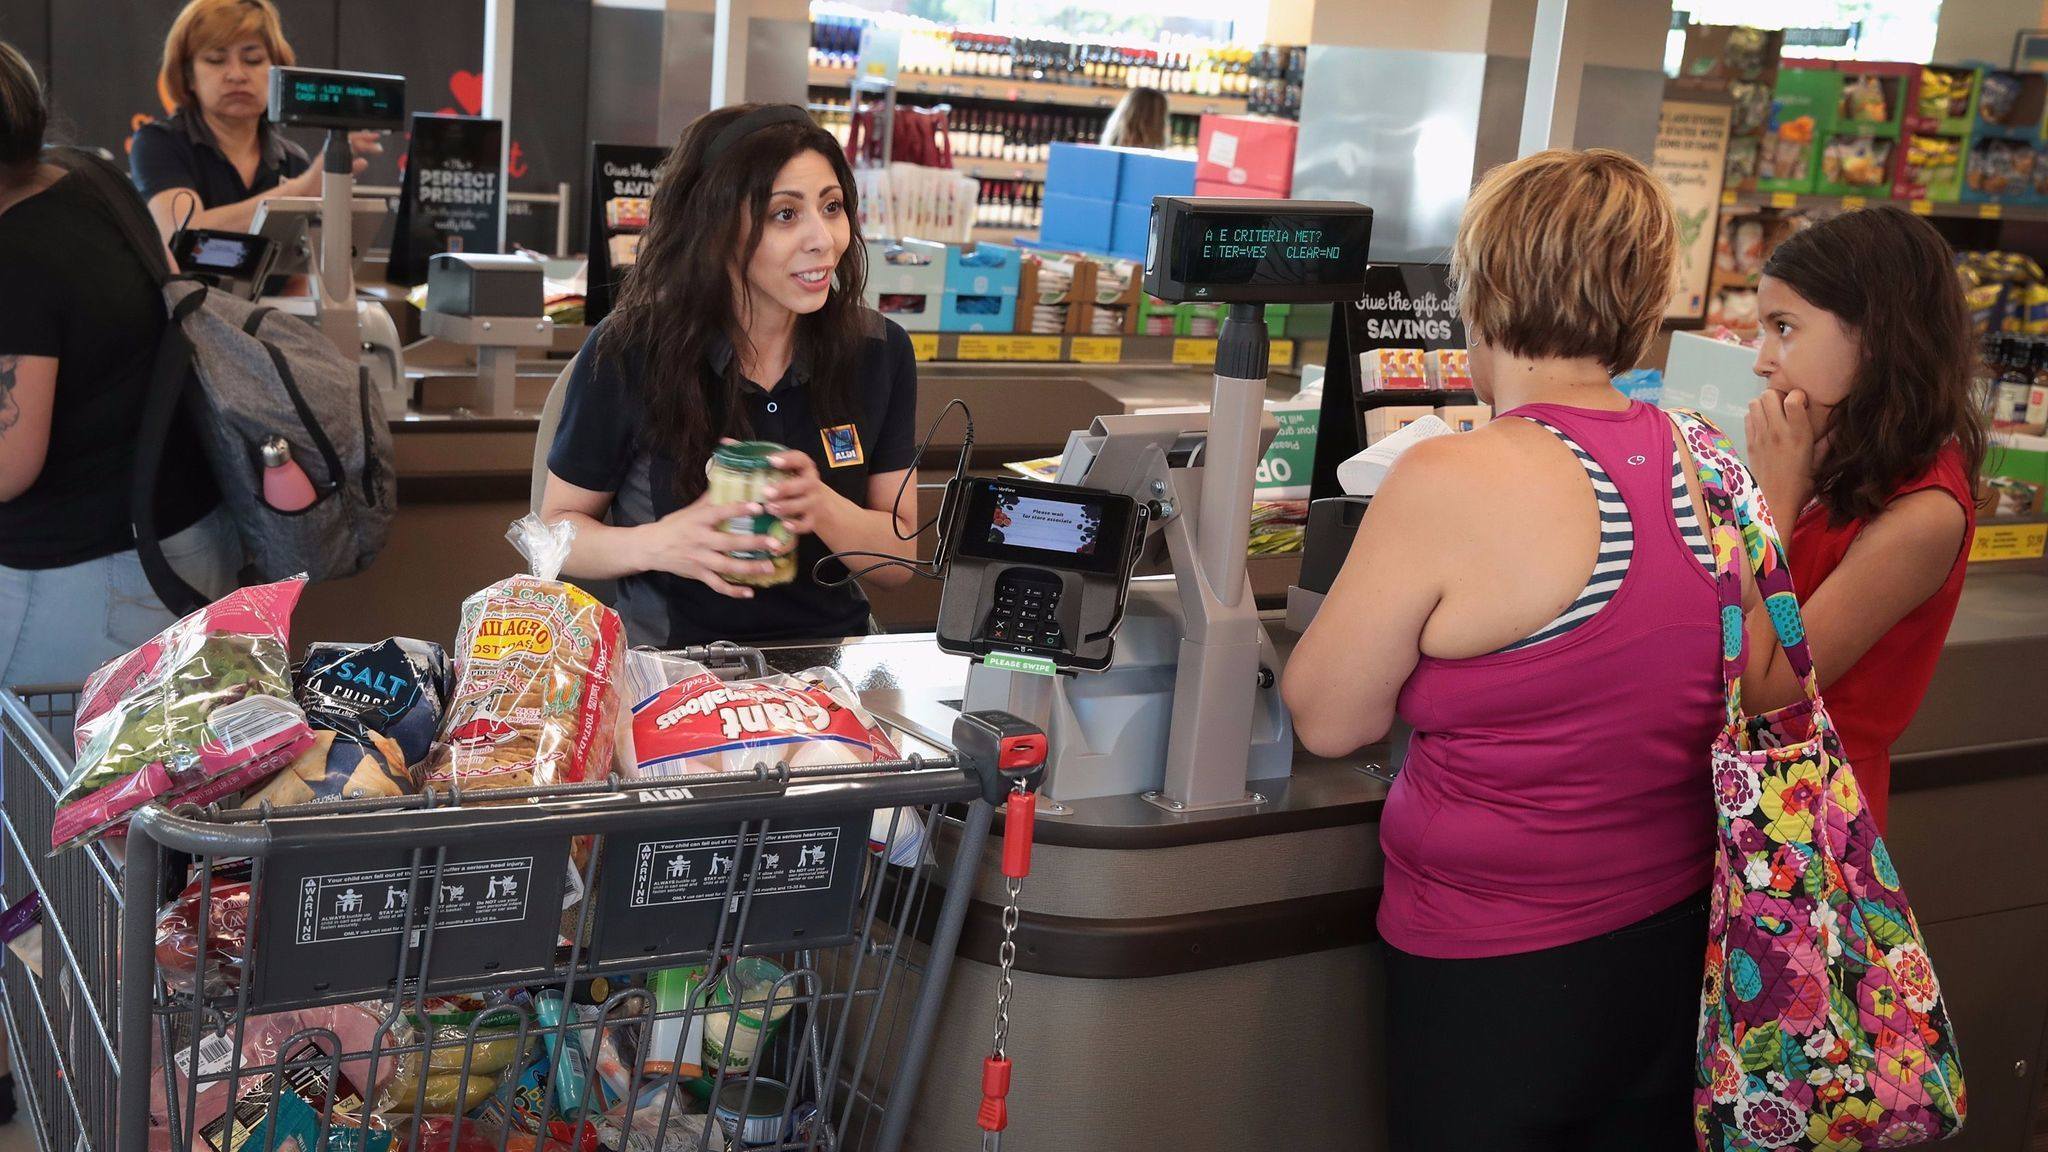 Customers shop at an Aldi grocery store in Chicago on June 12.